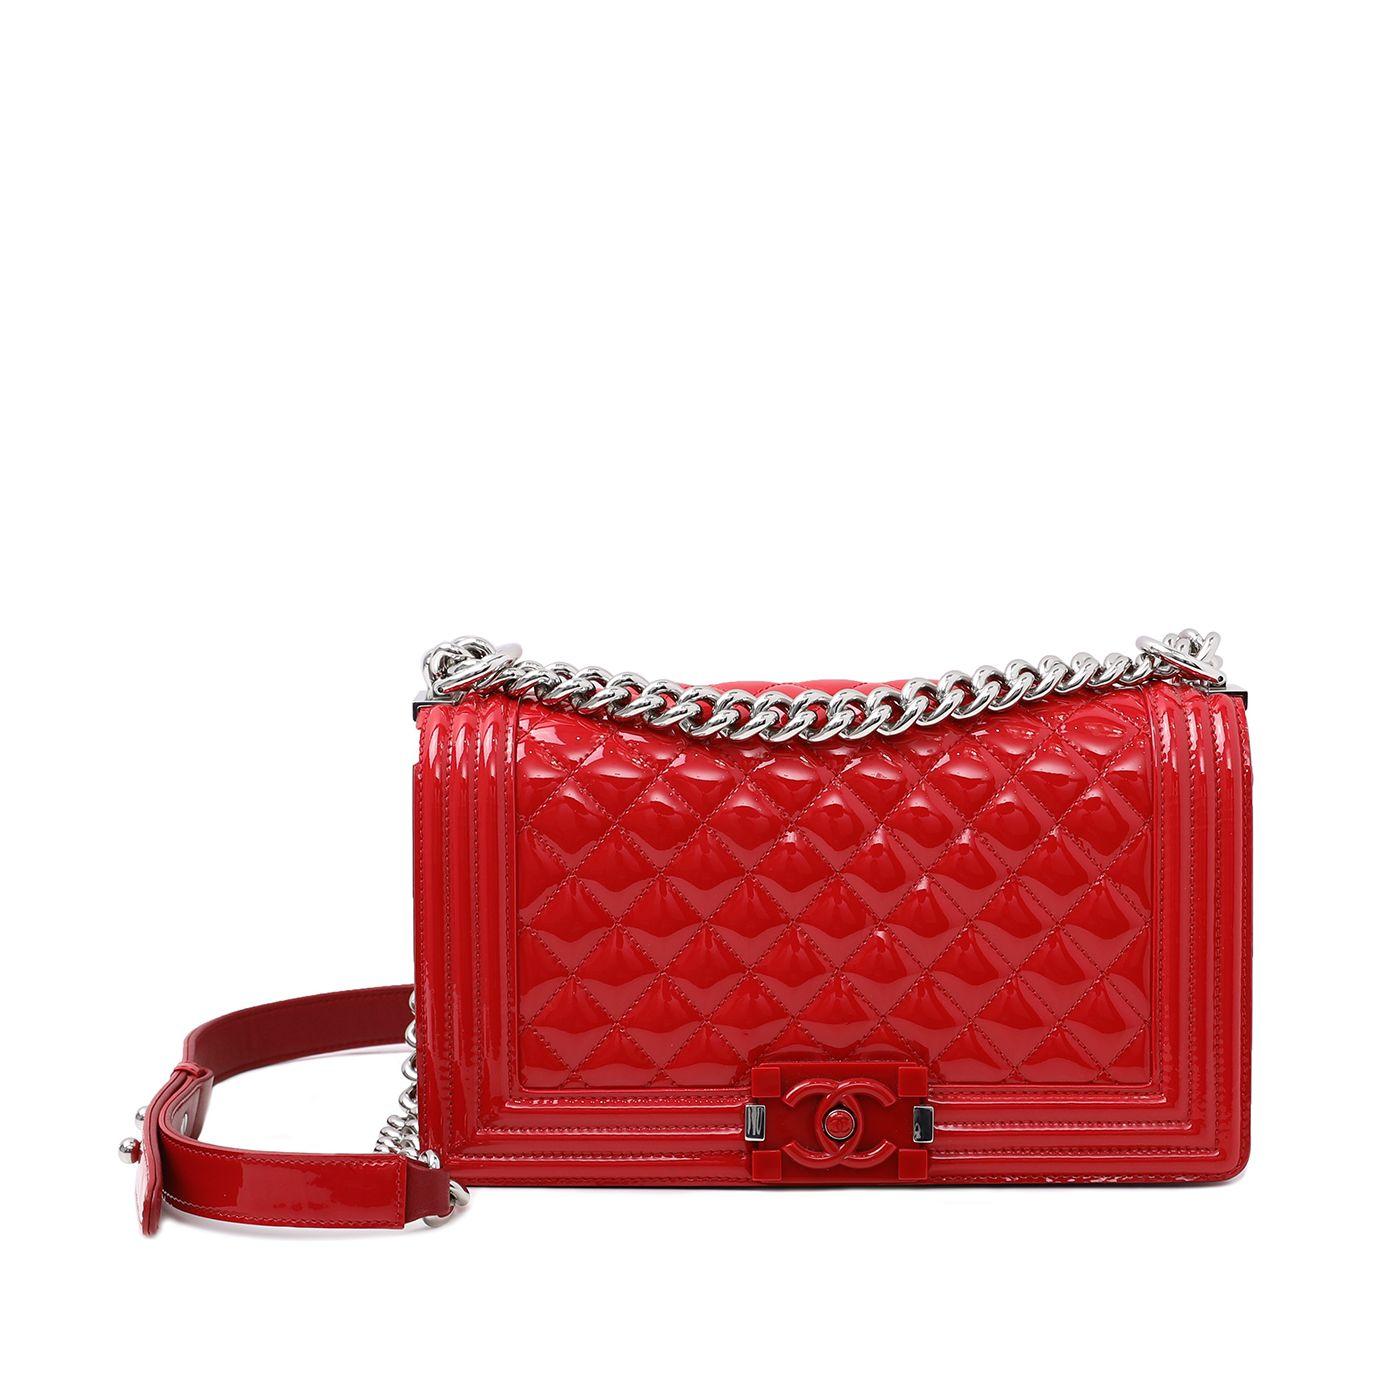 Chanel Red Boy Plexiglass Lock Bag